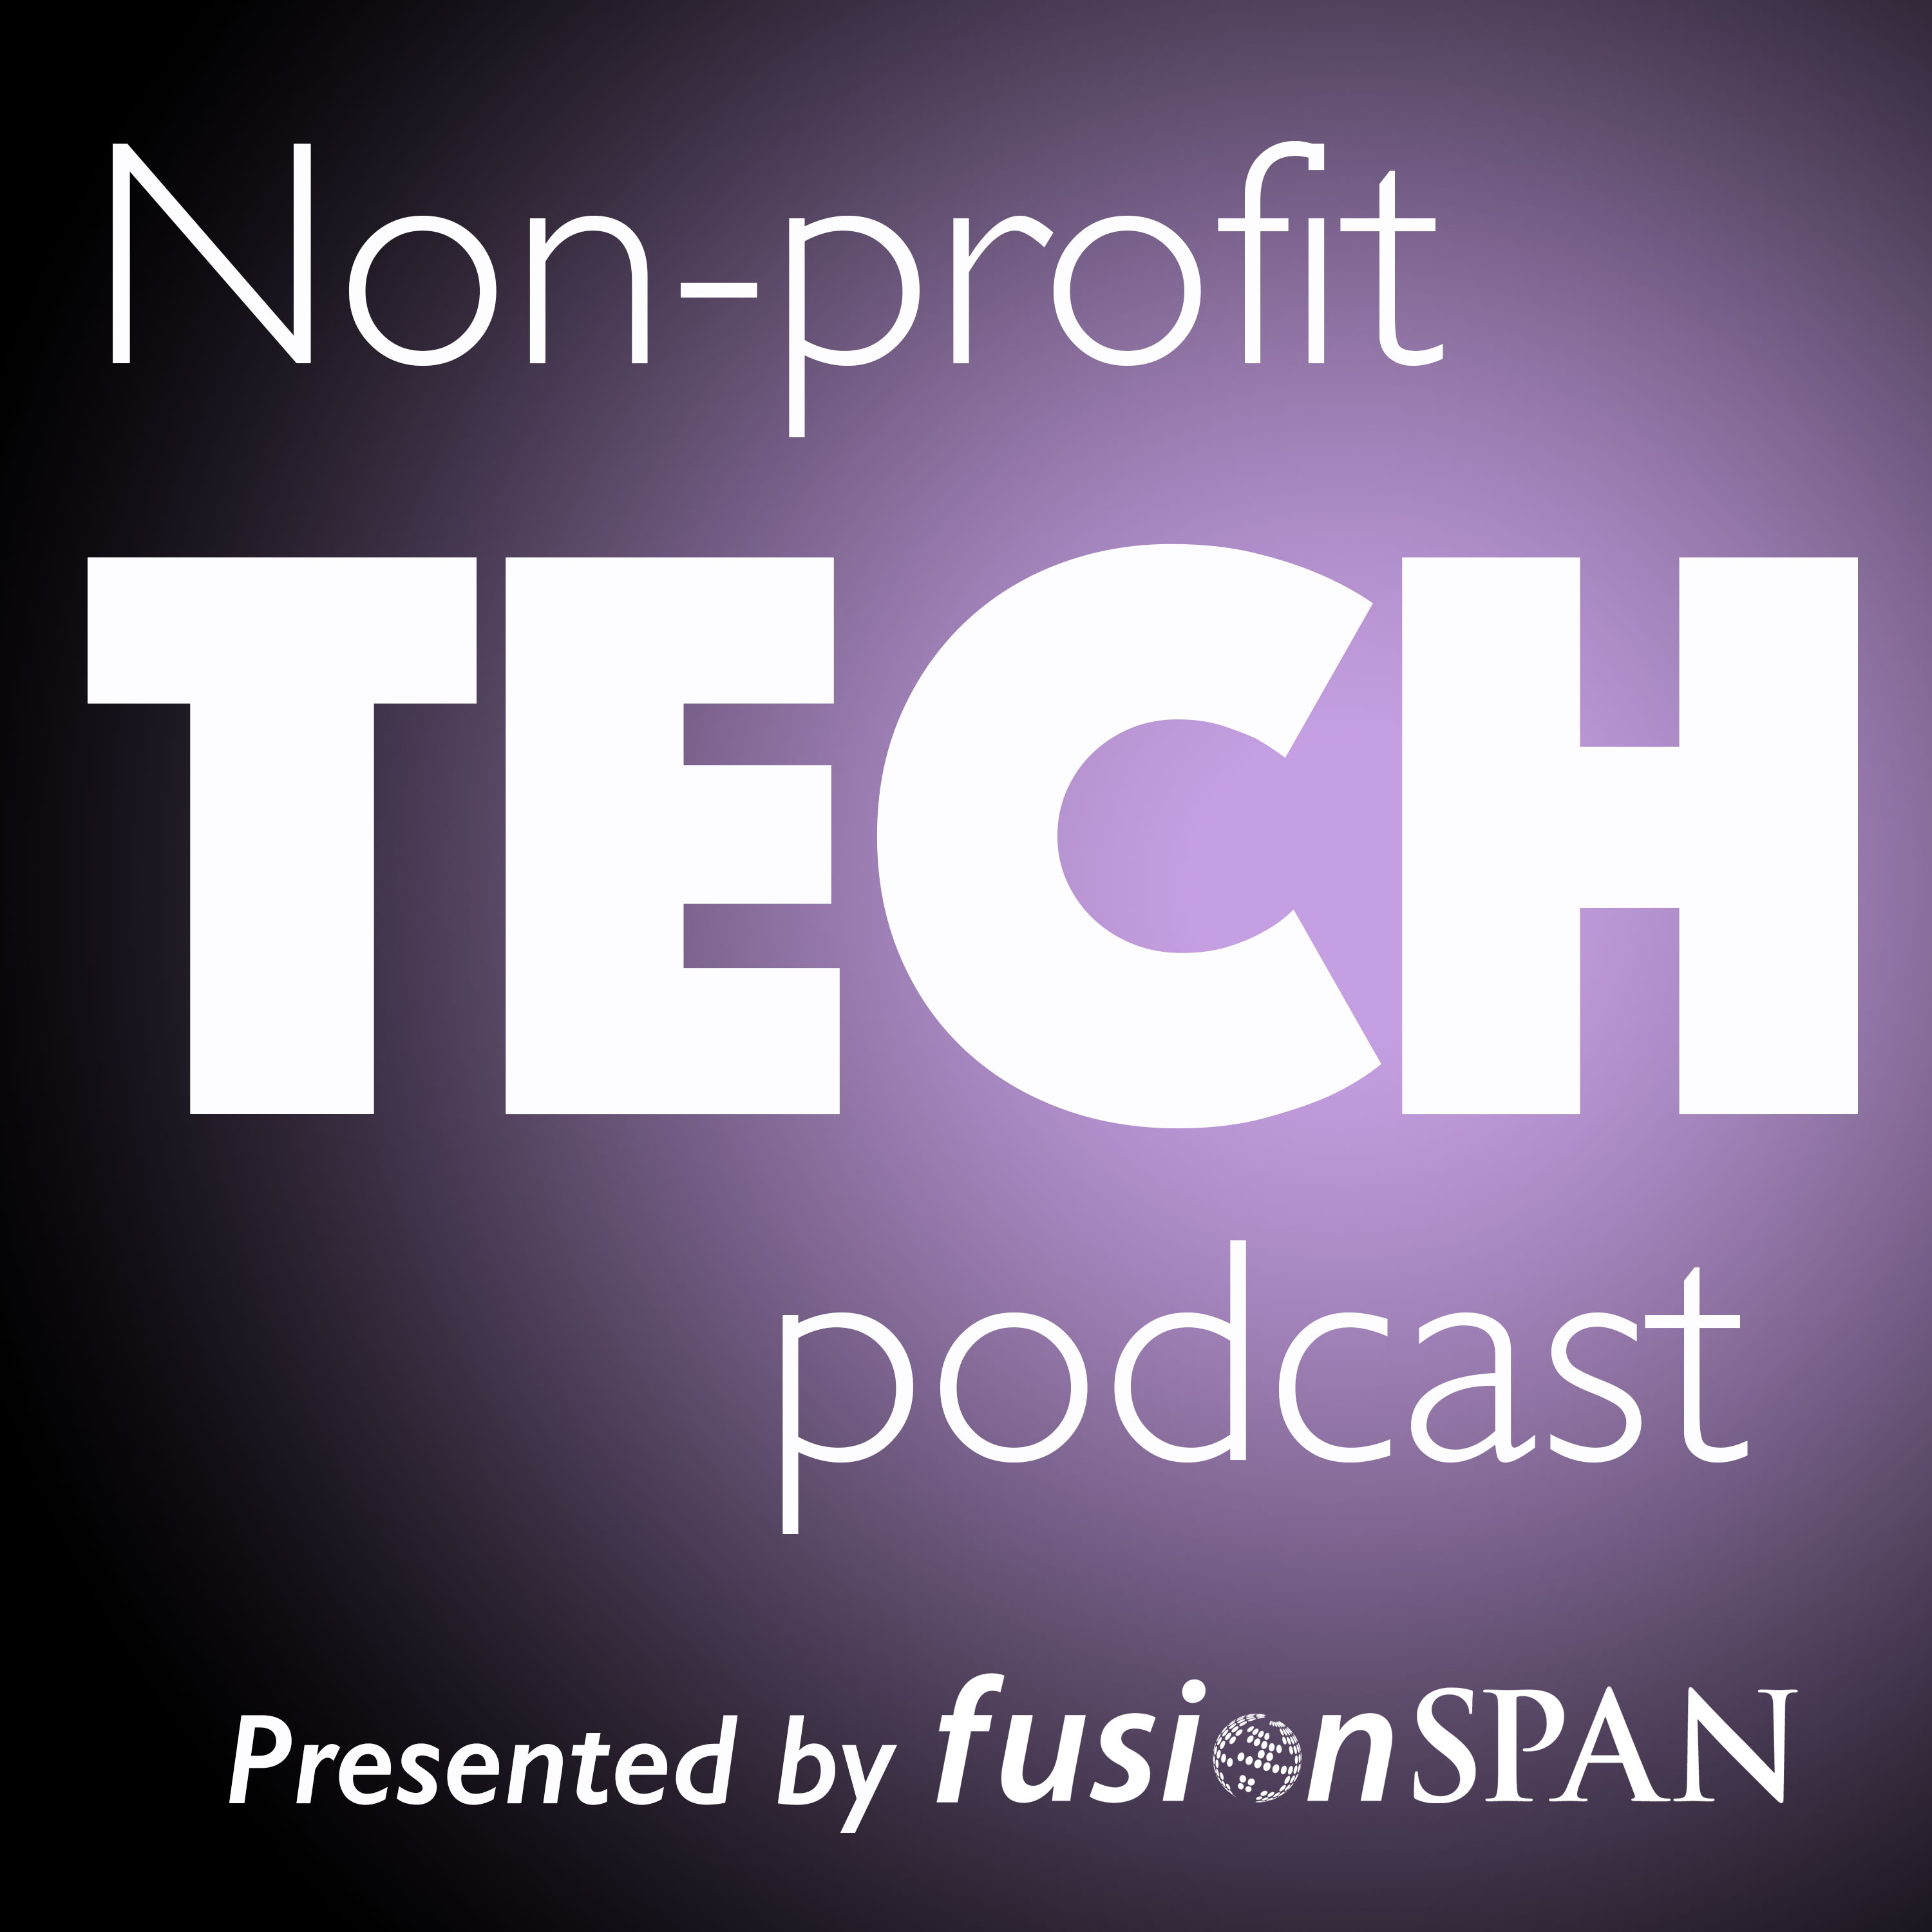 Non-profit Tech Podcasts